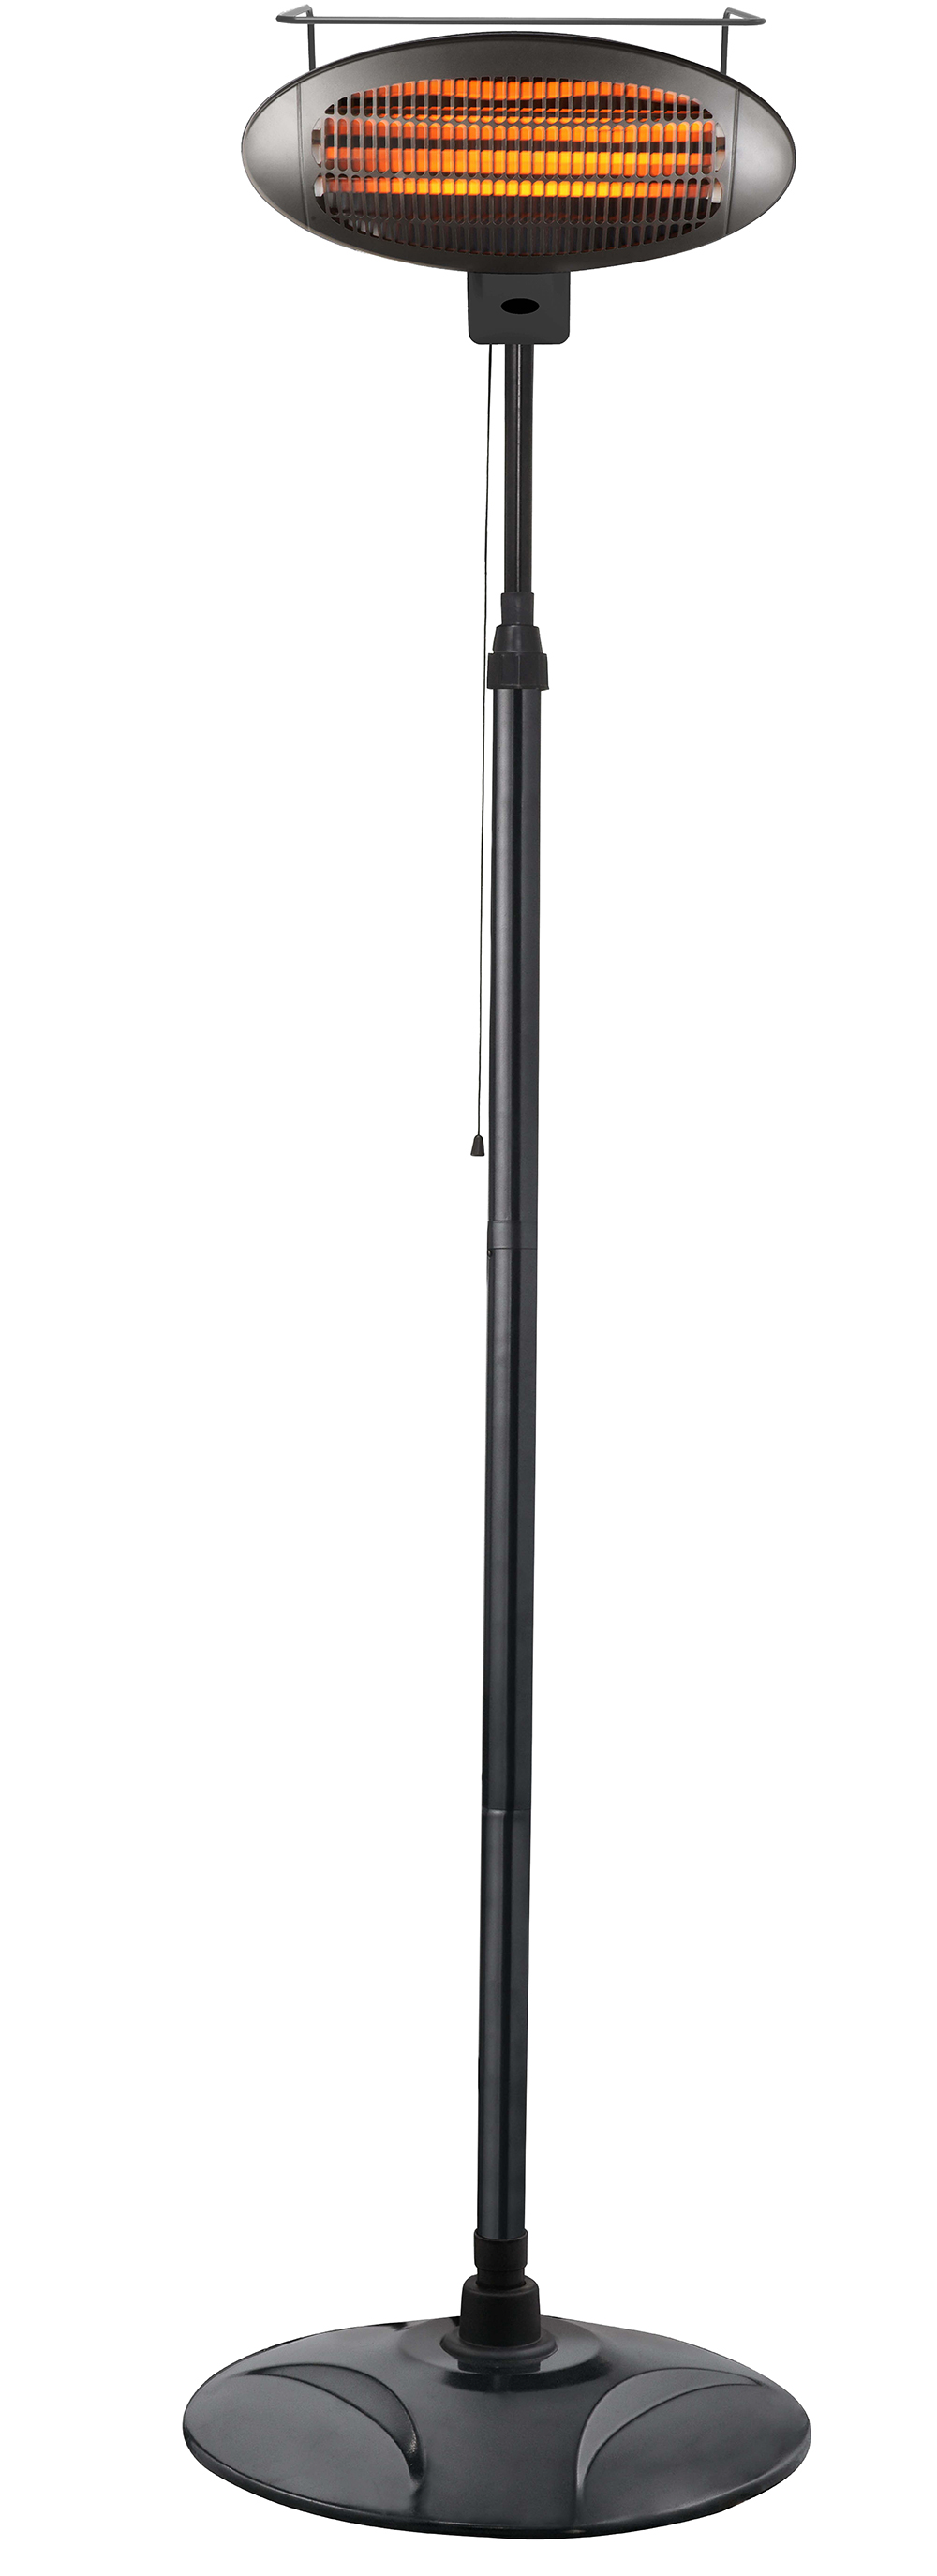 Freestanding Electric Heater in Black